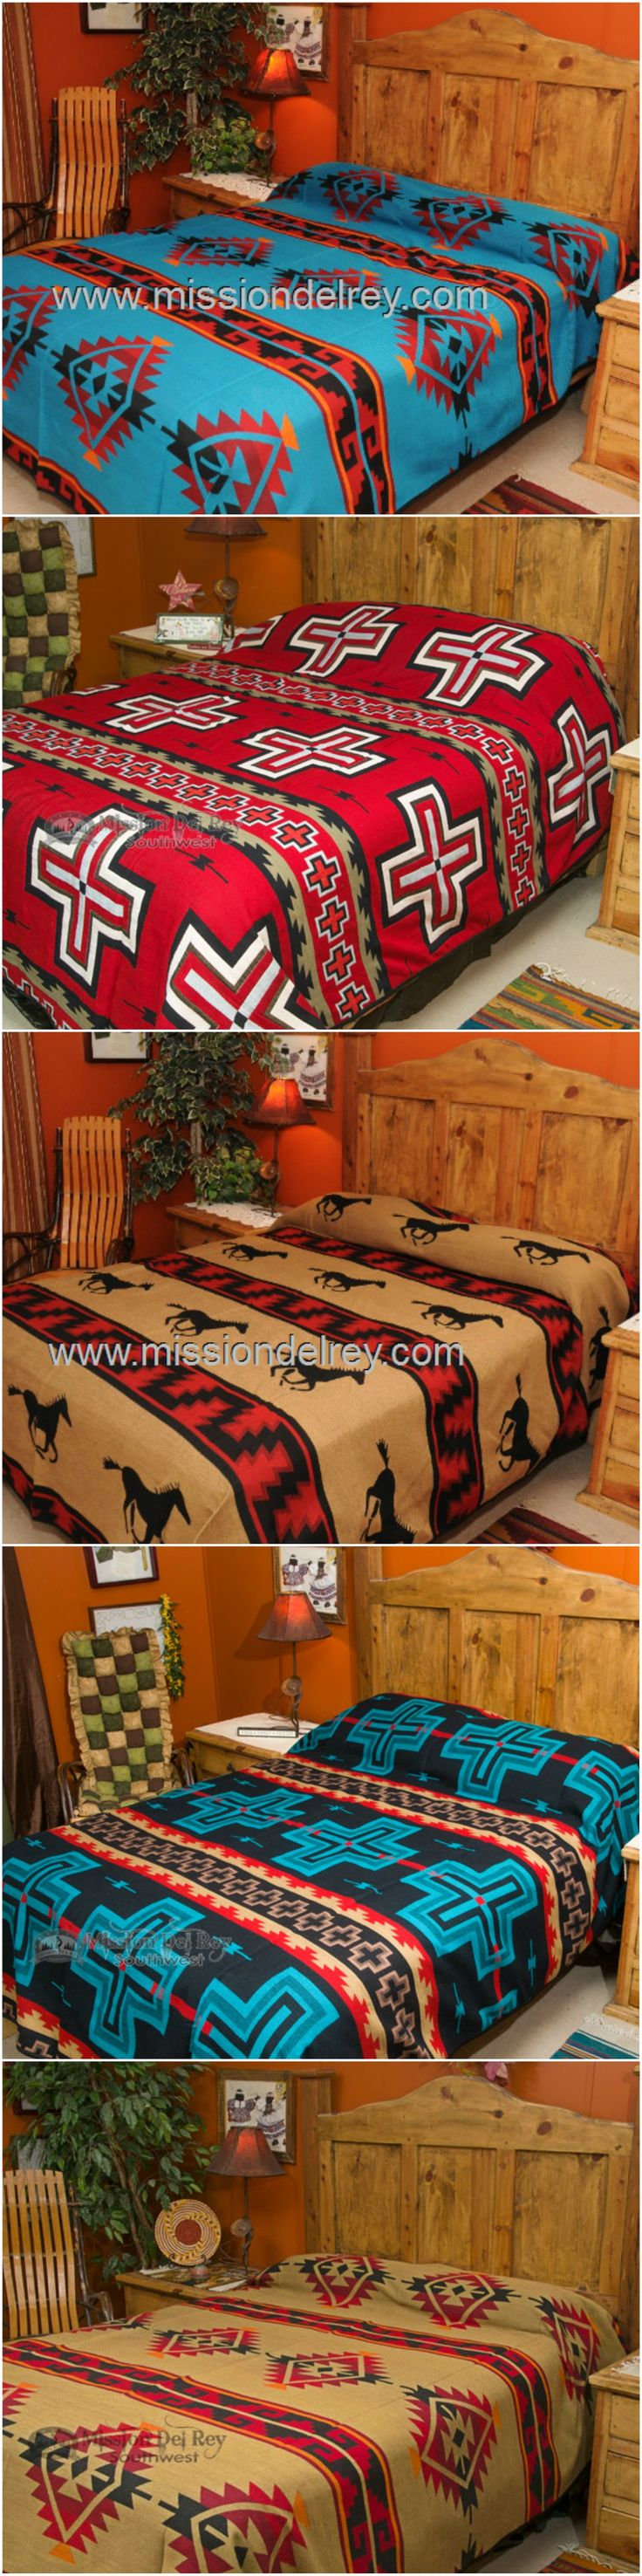 ... Cowboy, Lodge, Cabin, Or Southwest Style Decor. Bring Authentic Western  Style To Life In Your Home With A Reversible Bedspread From Our Western ...